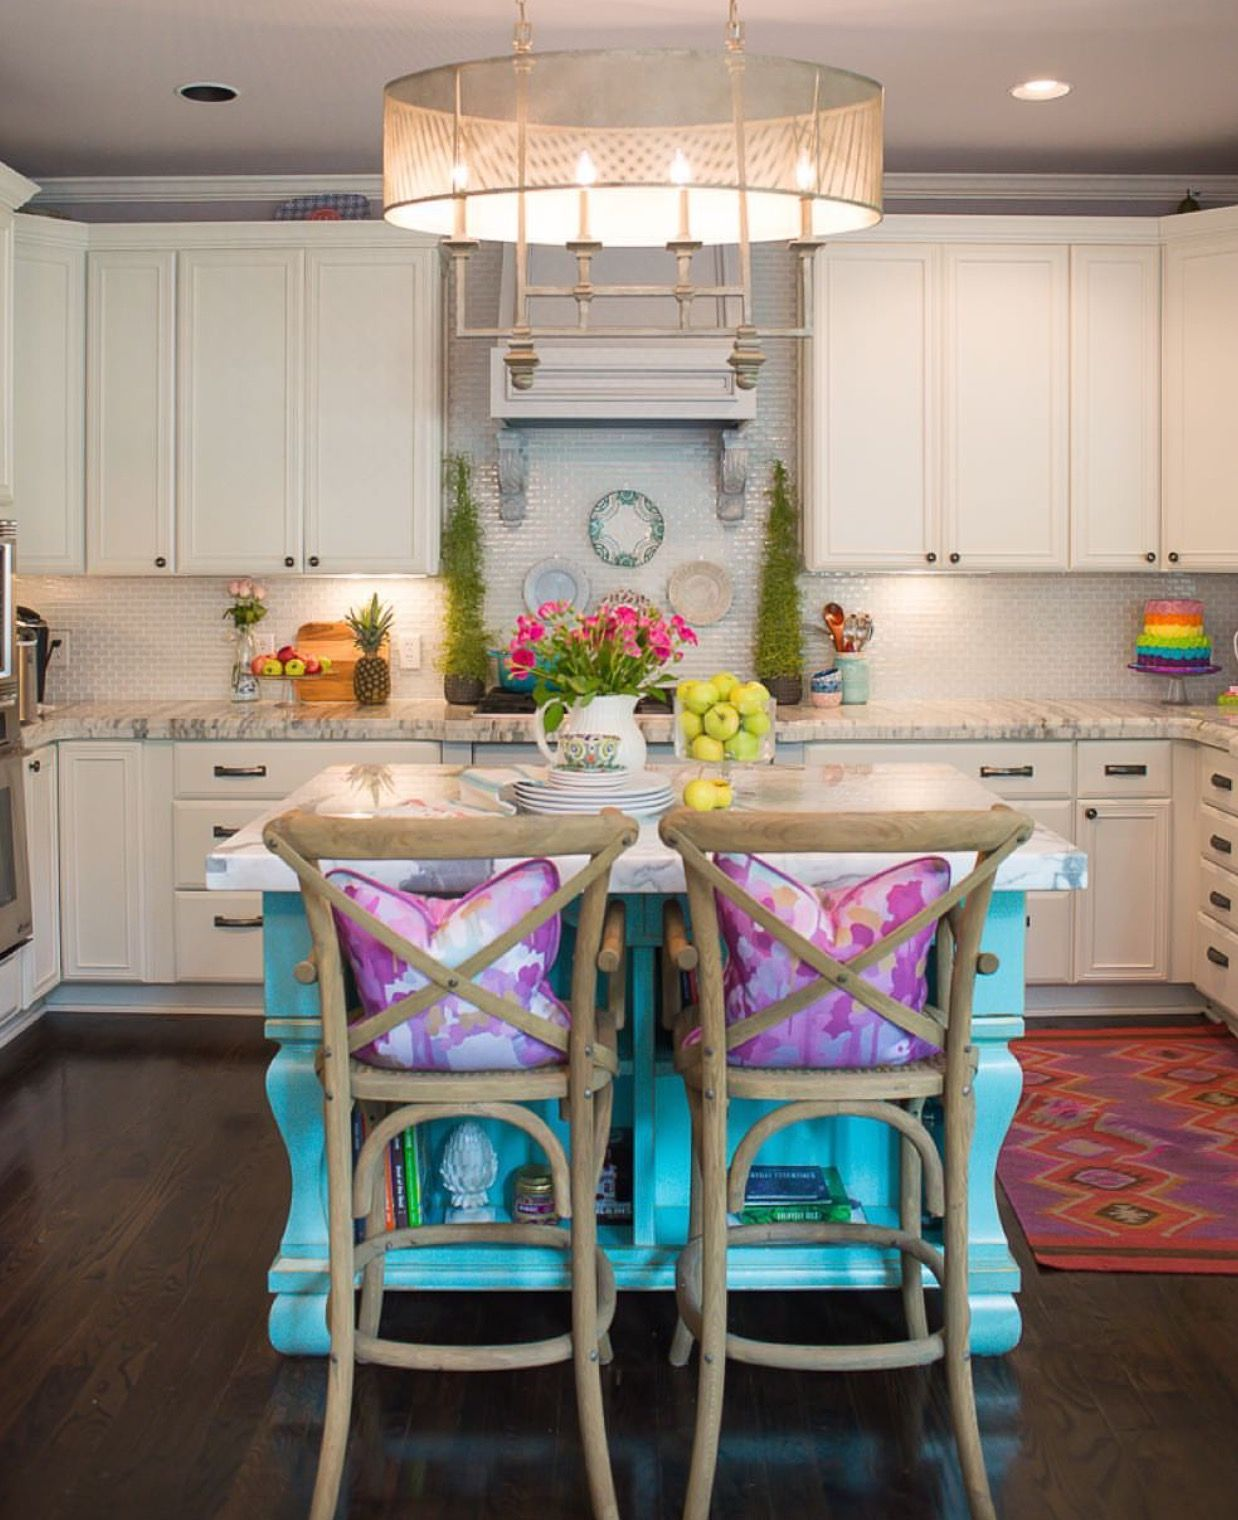 home office country kitchen ideas white cabinets. Finally Taking You On A Tour Our Completely Finished And Renovated White Kitchen! With Pop Of Color Course! Home Office Country Kitchen Ideas Cabinets C